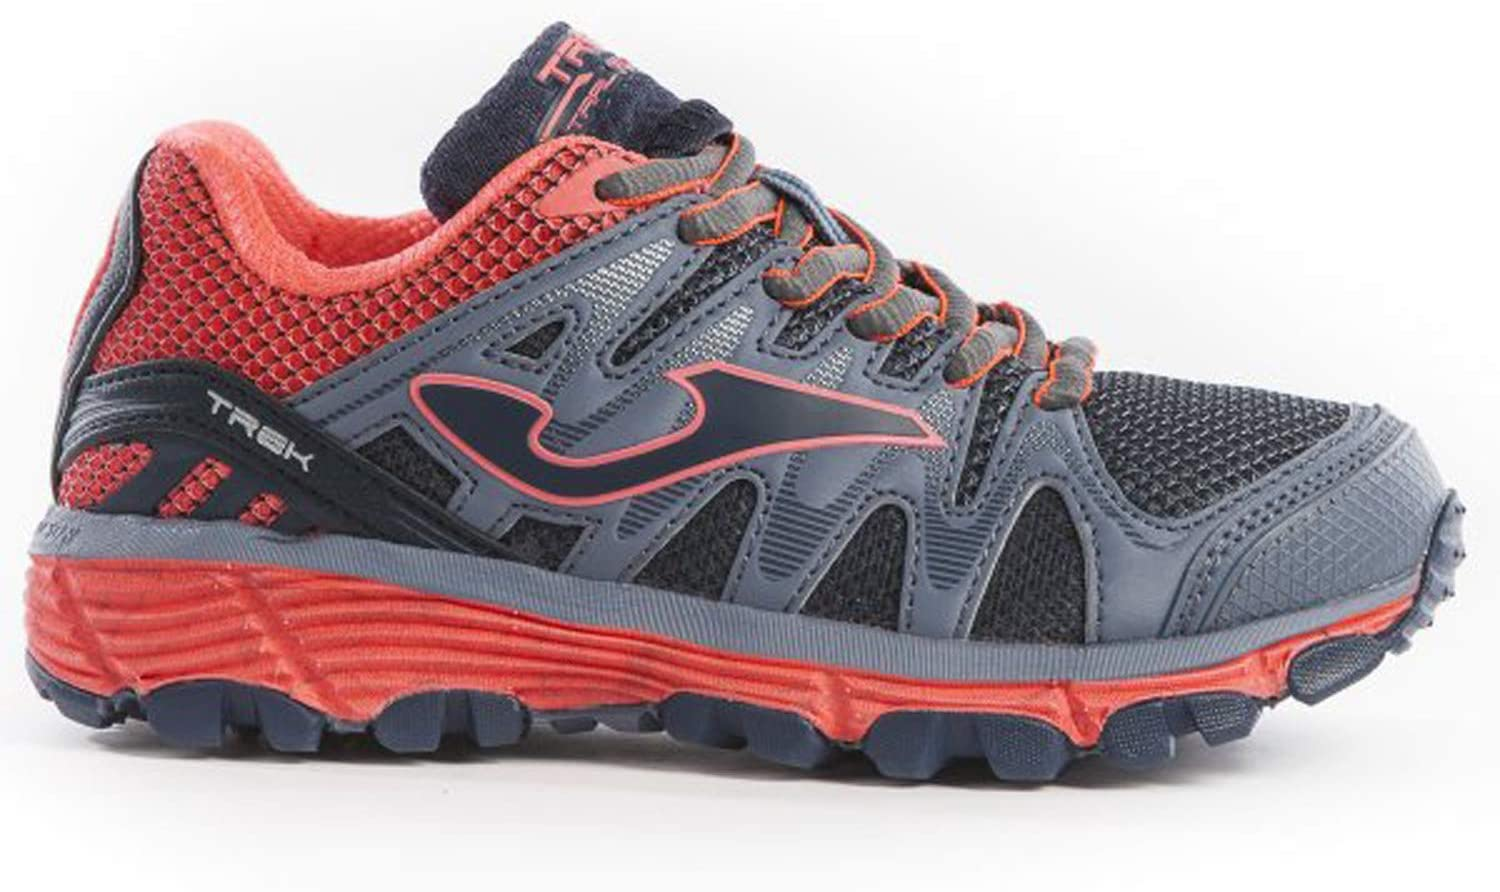 Joma Adventure Shoes Junior J_TREKS 912 - Zapatillas de Deporte, Color Gris y Rosa: Amazon.es: Deportes y aire libre